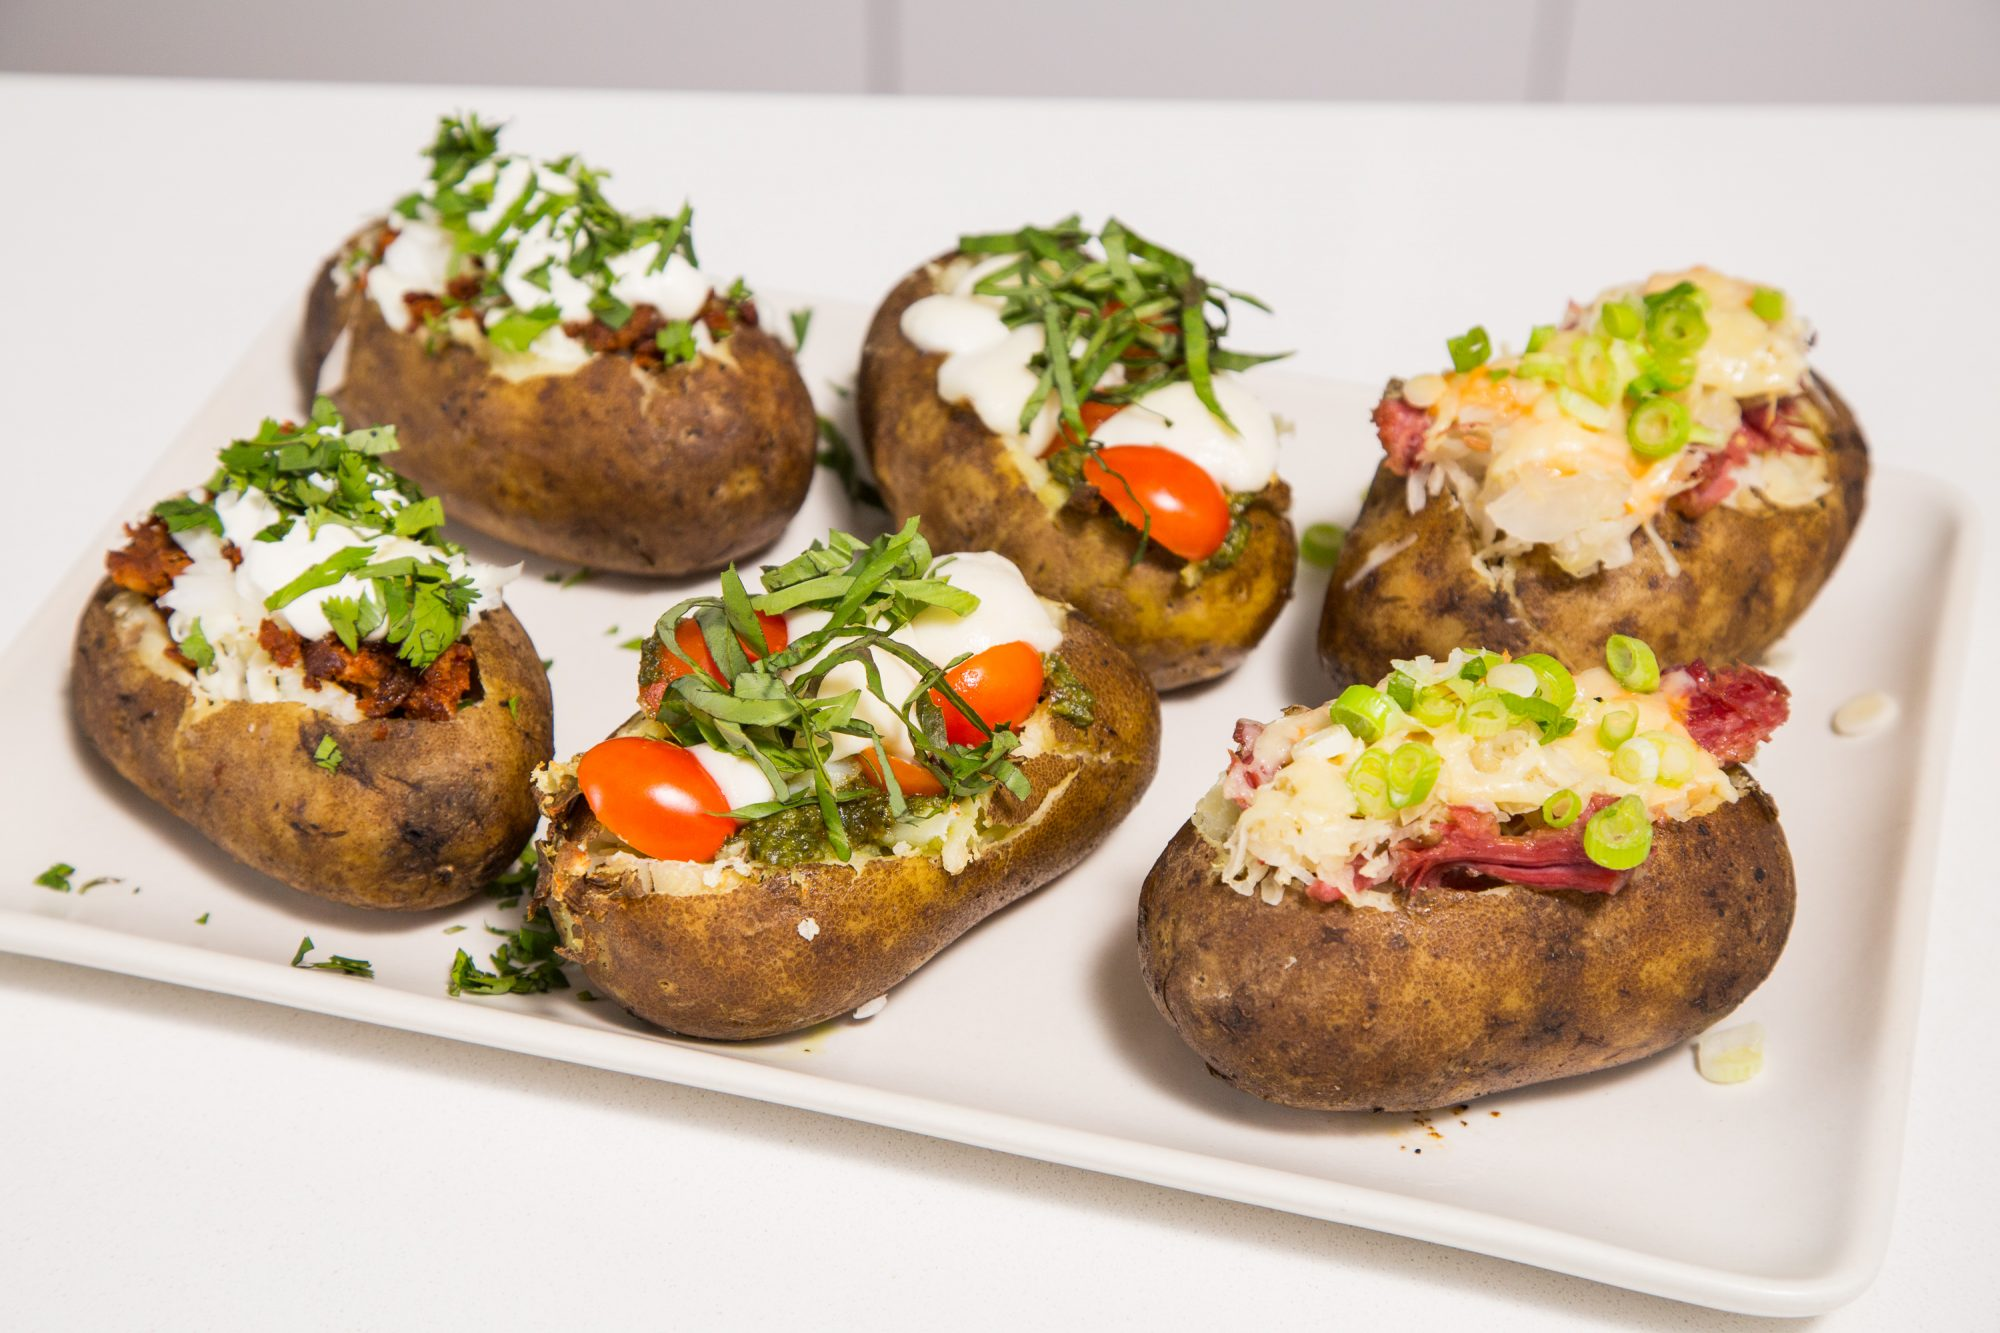 Three Ways Stuffed Baked Potatoes